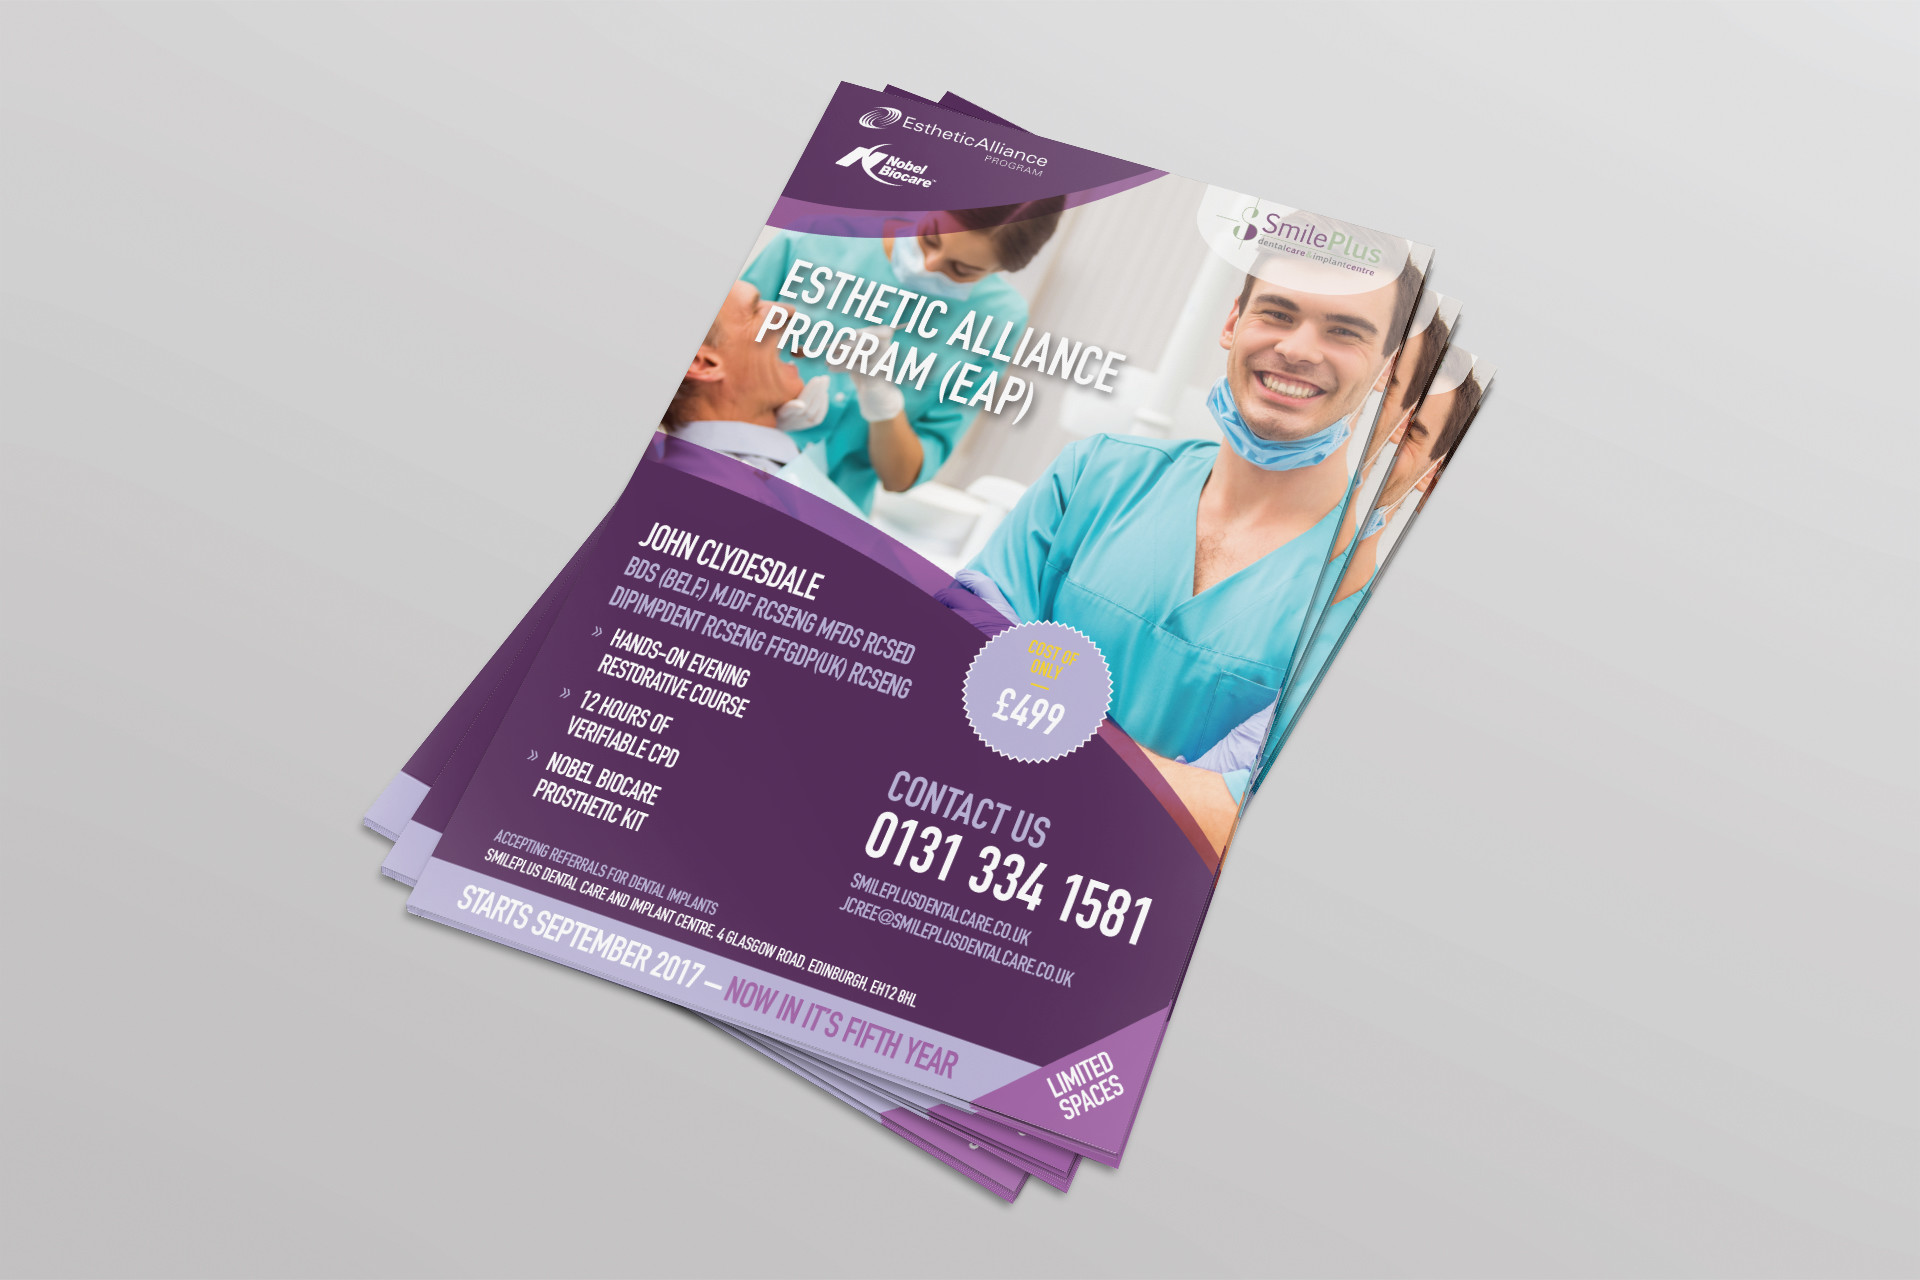 Flyer-design-Glasgow-Edinburgh-West-Lothian-32.jpg